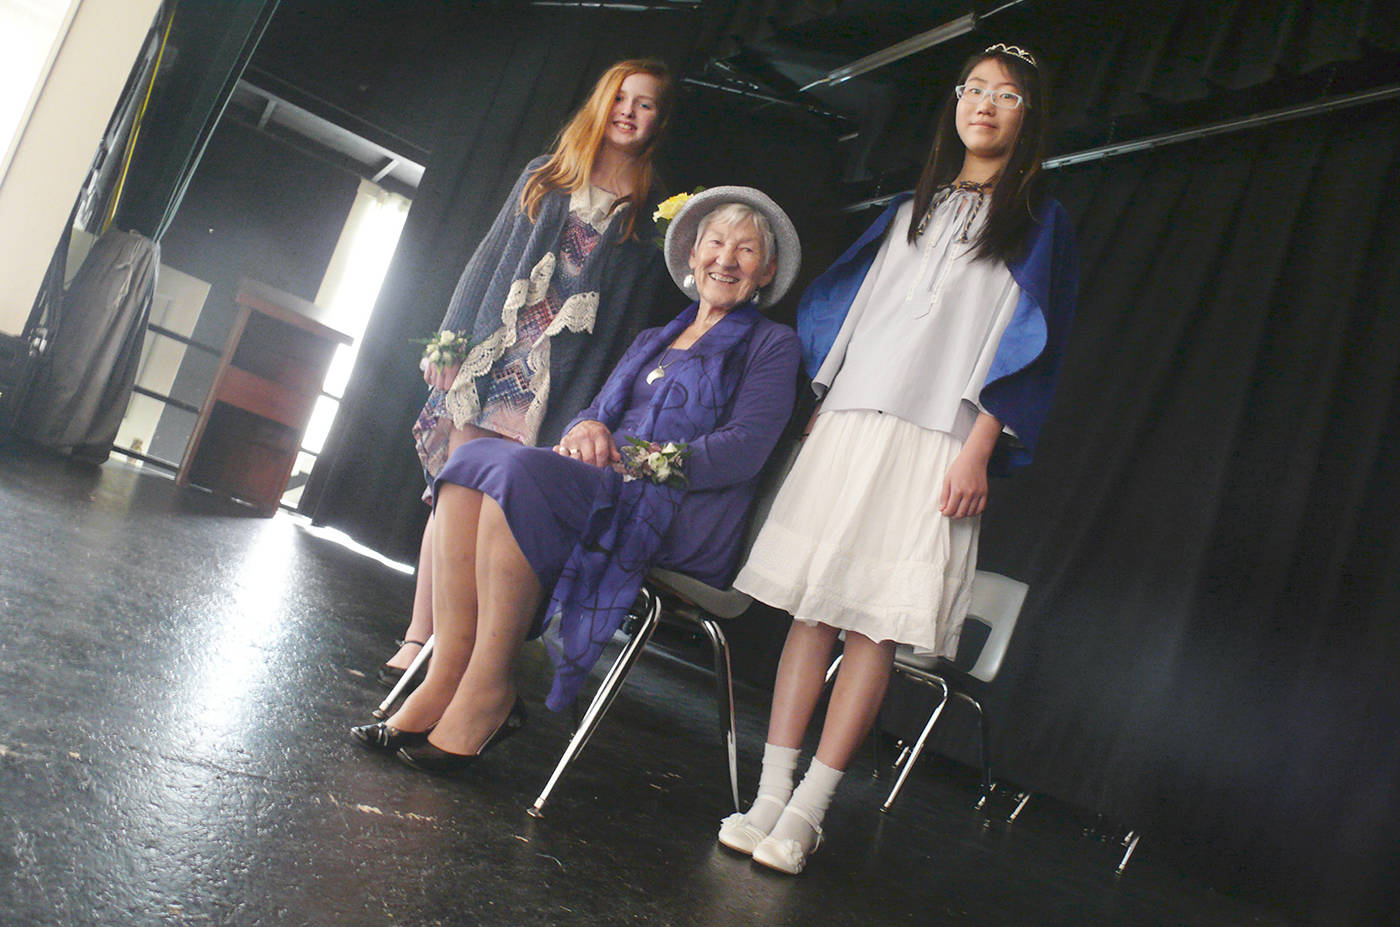 Langley royalty poses for a photo. L to R: 2017 May Queen Emerson Curtis, Queen Mum Mary Watt and 2016 Queen Chloe Park. The Queen and her court were chosen at the Sunday tea at the Fort Langley community hall.                                Dan Ferguson Langley Times